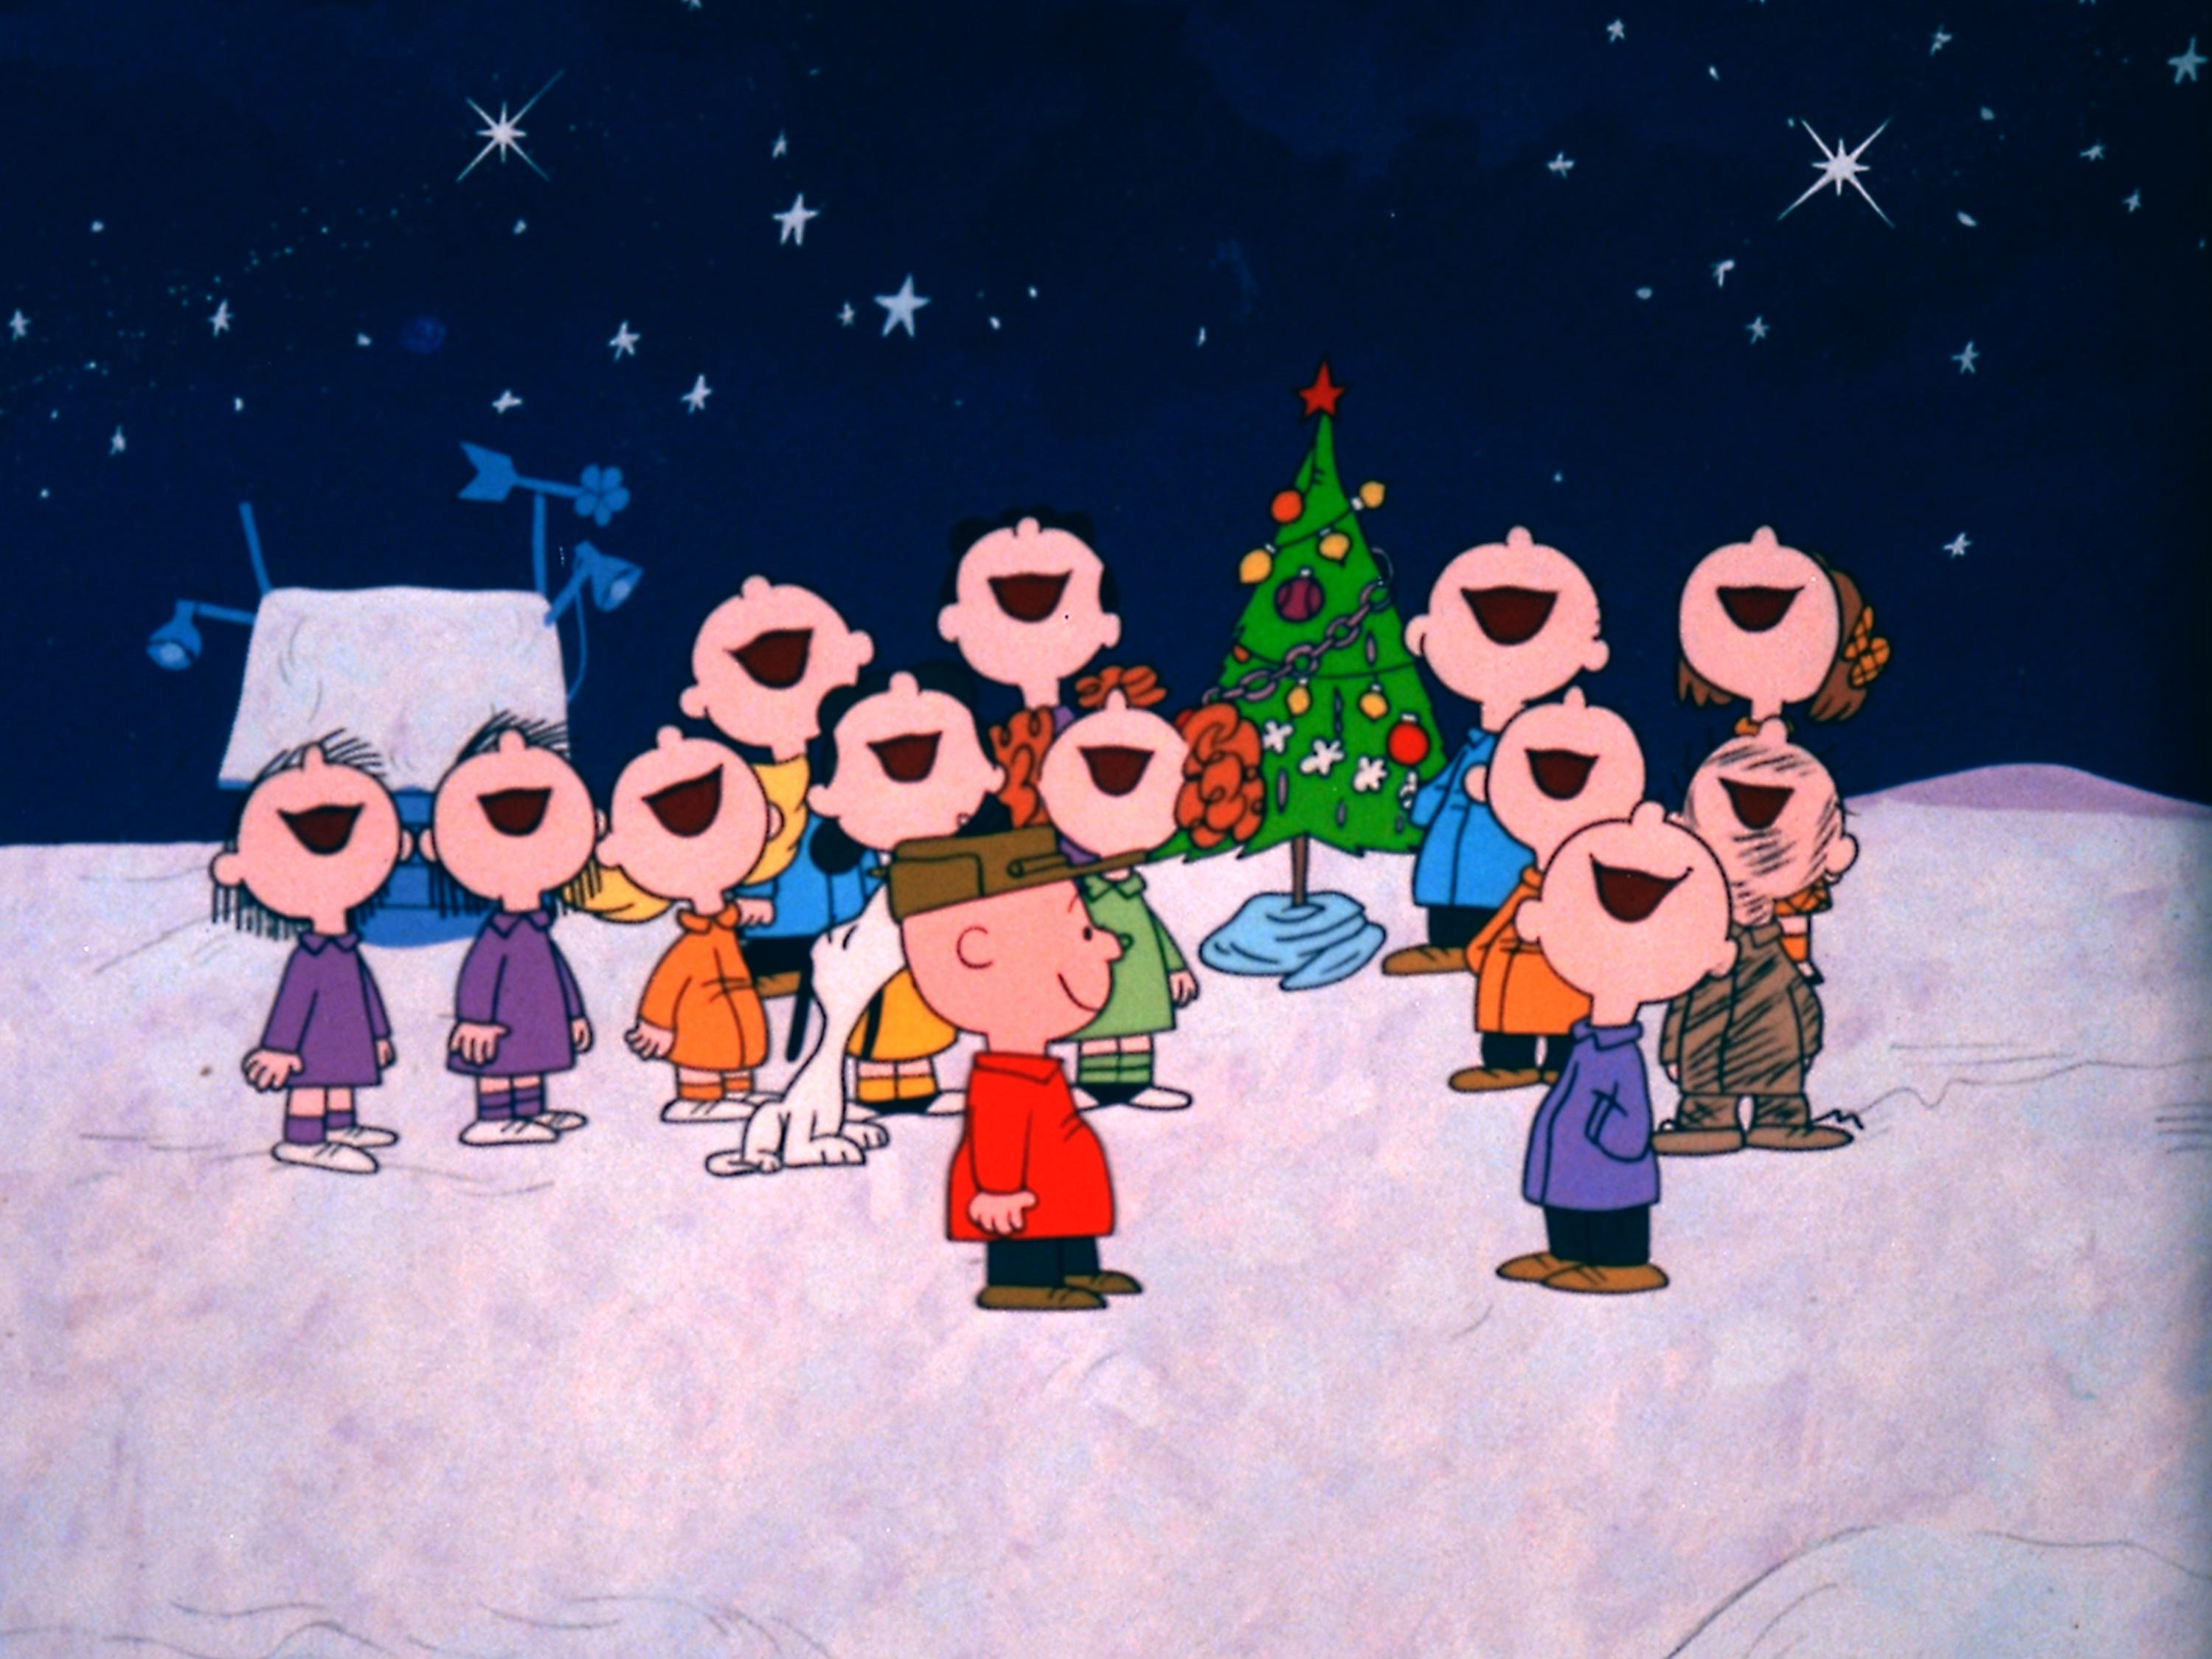 'A Charlie Brown Christmas' has already aired this year, but it's coming on again soon